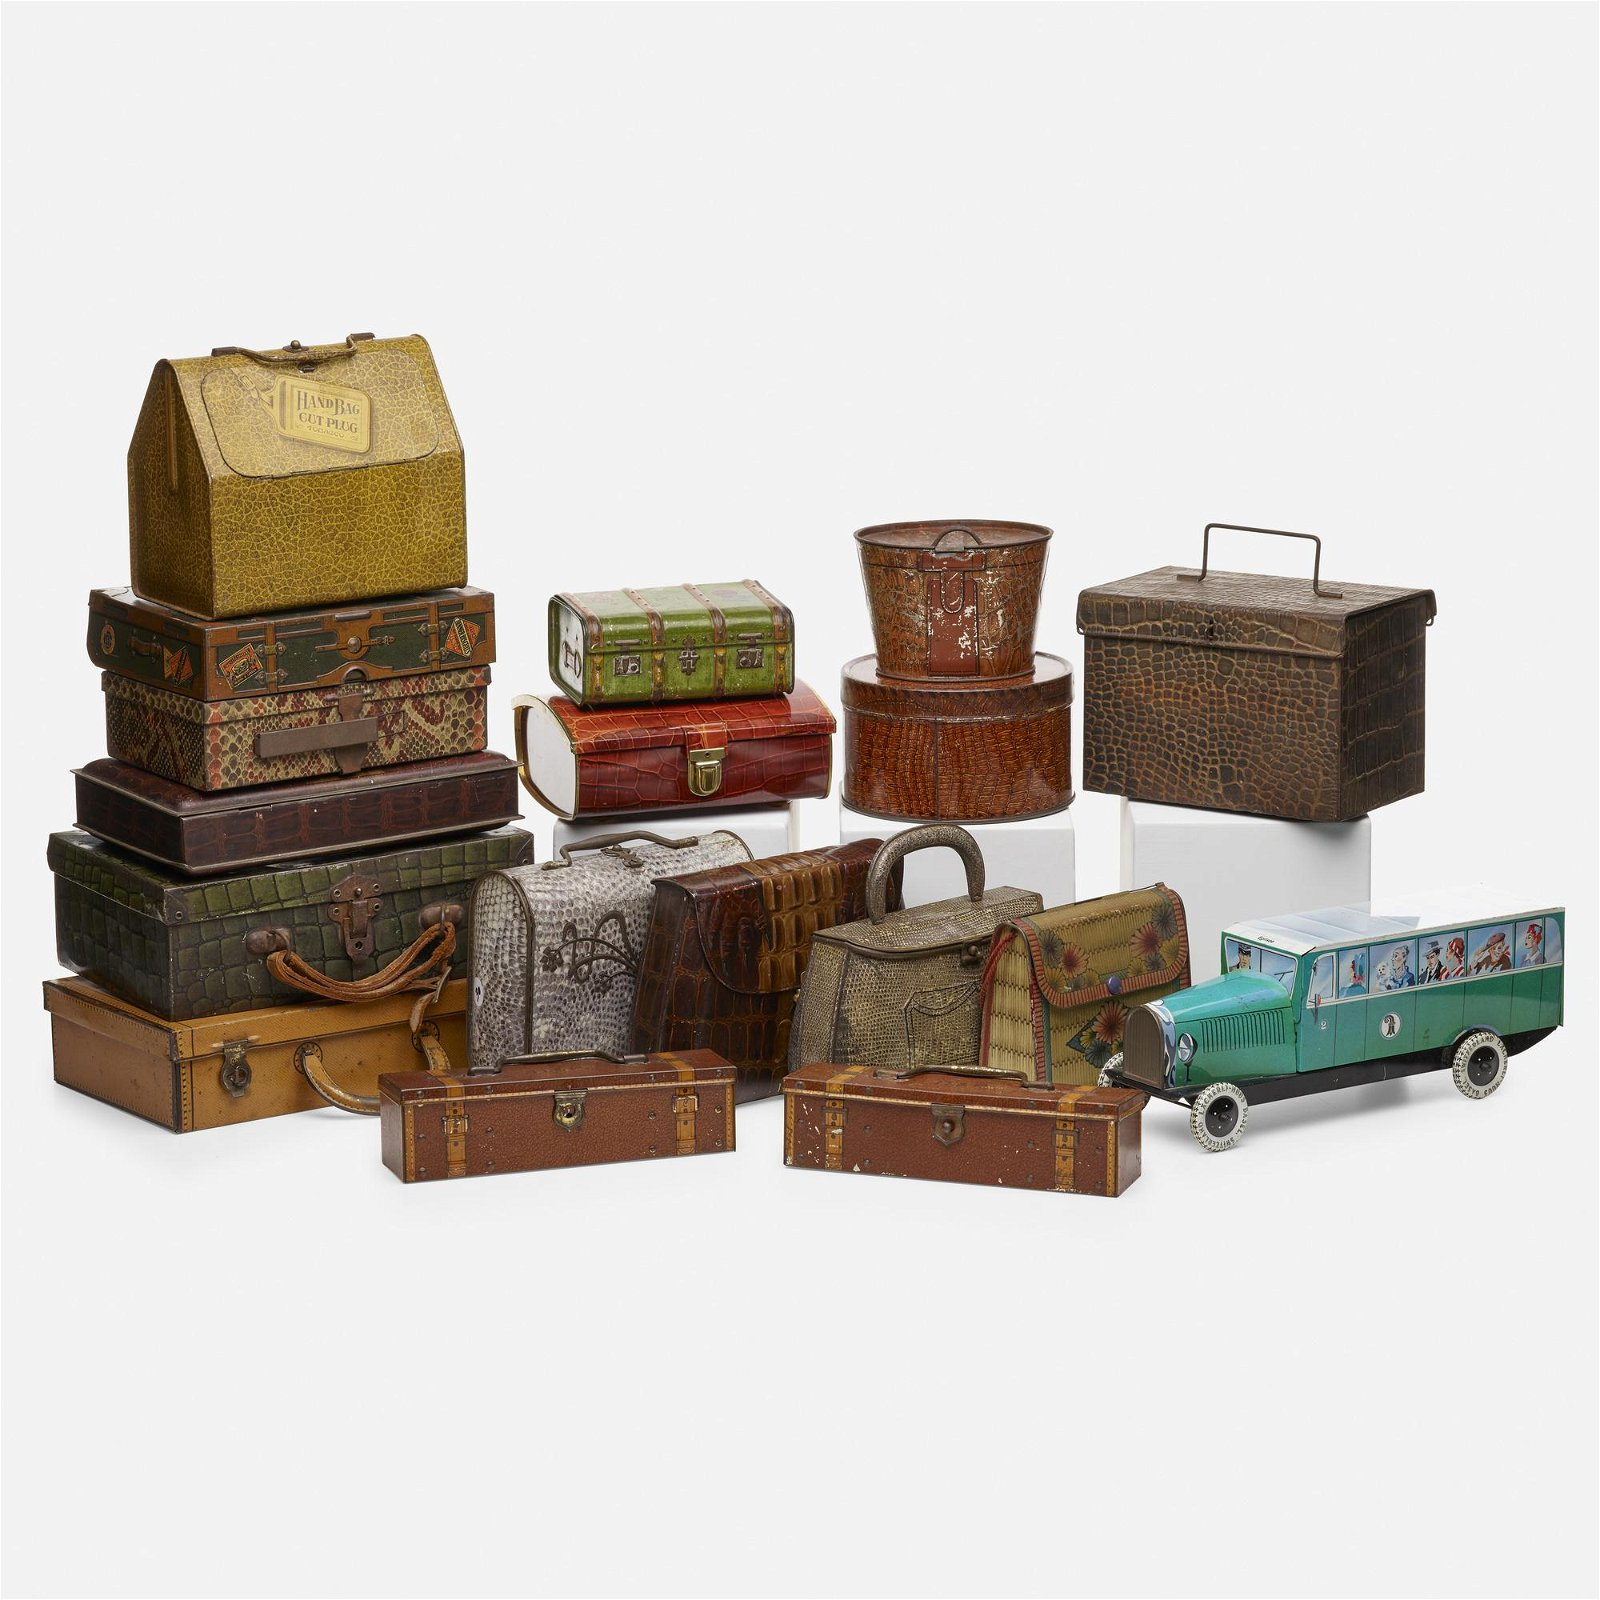 biscuit tins, collection of eighteen